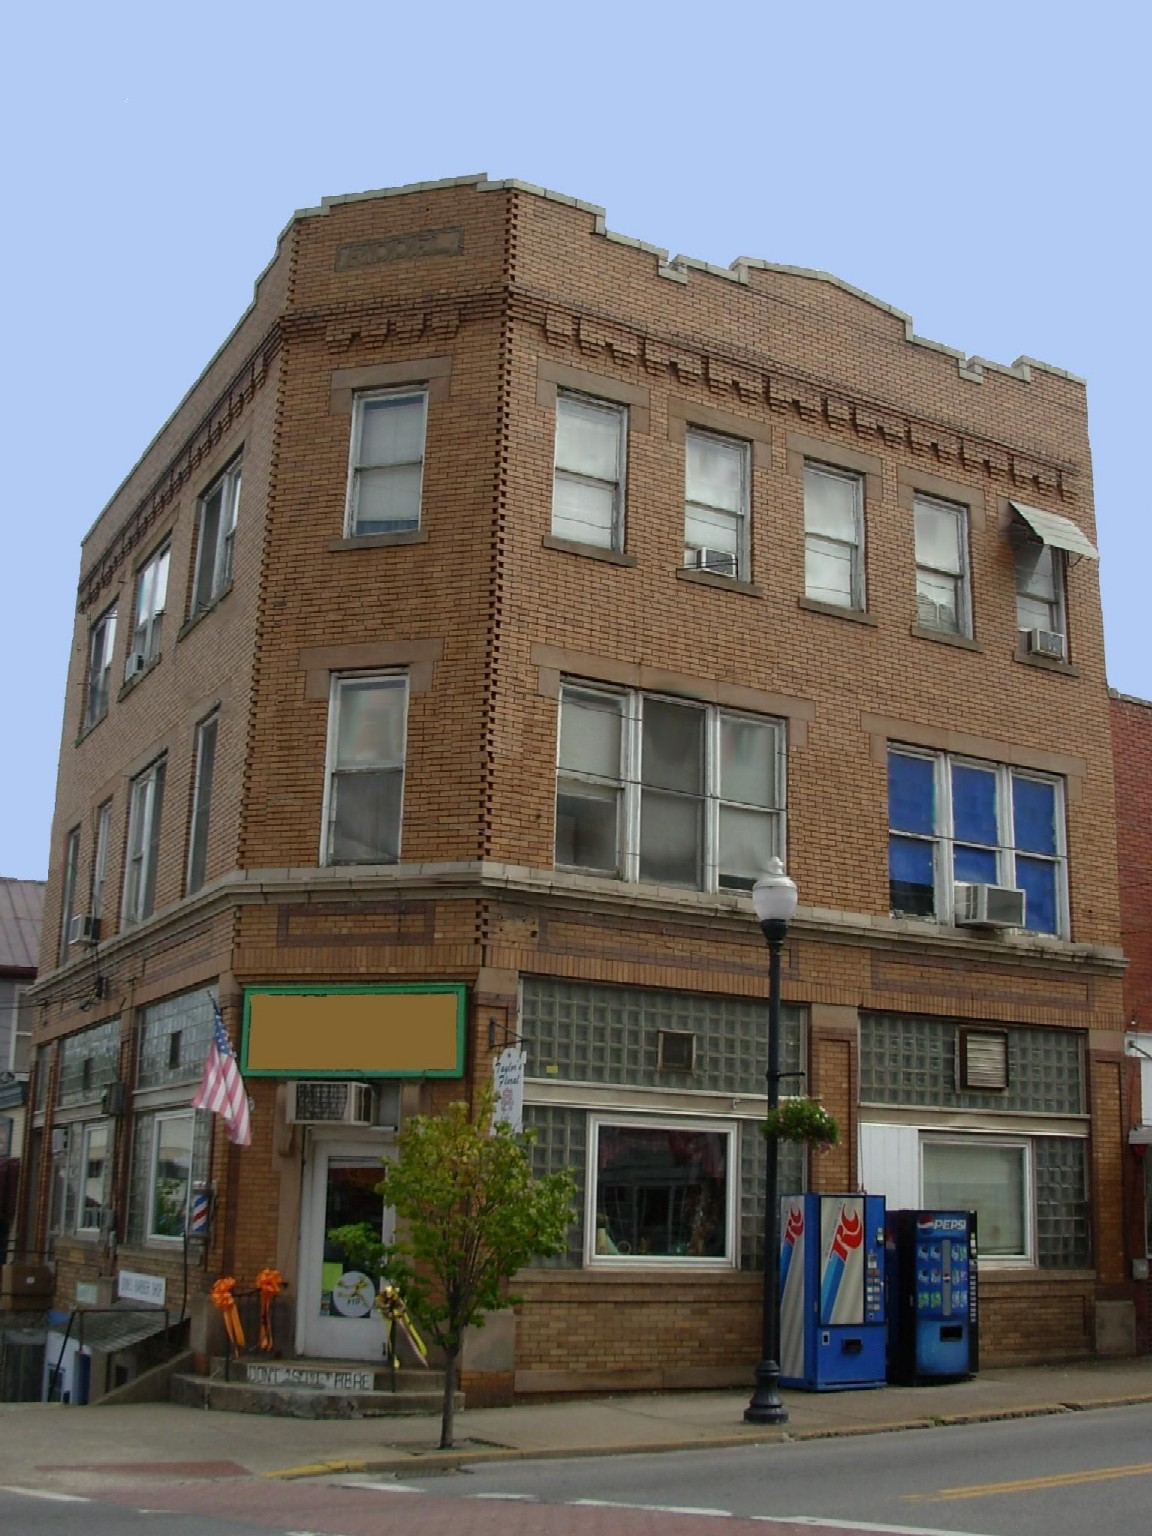 The Riddle Building